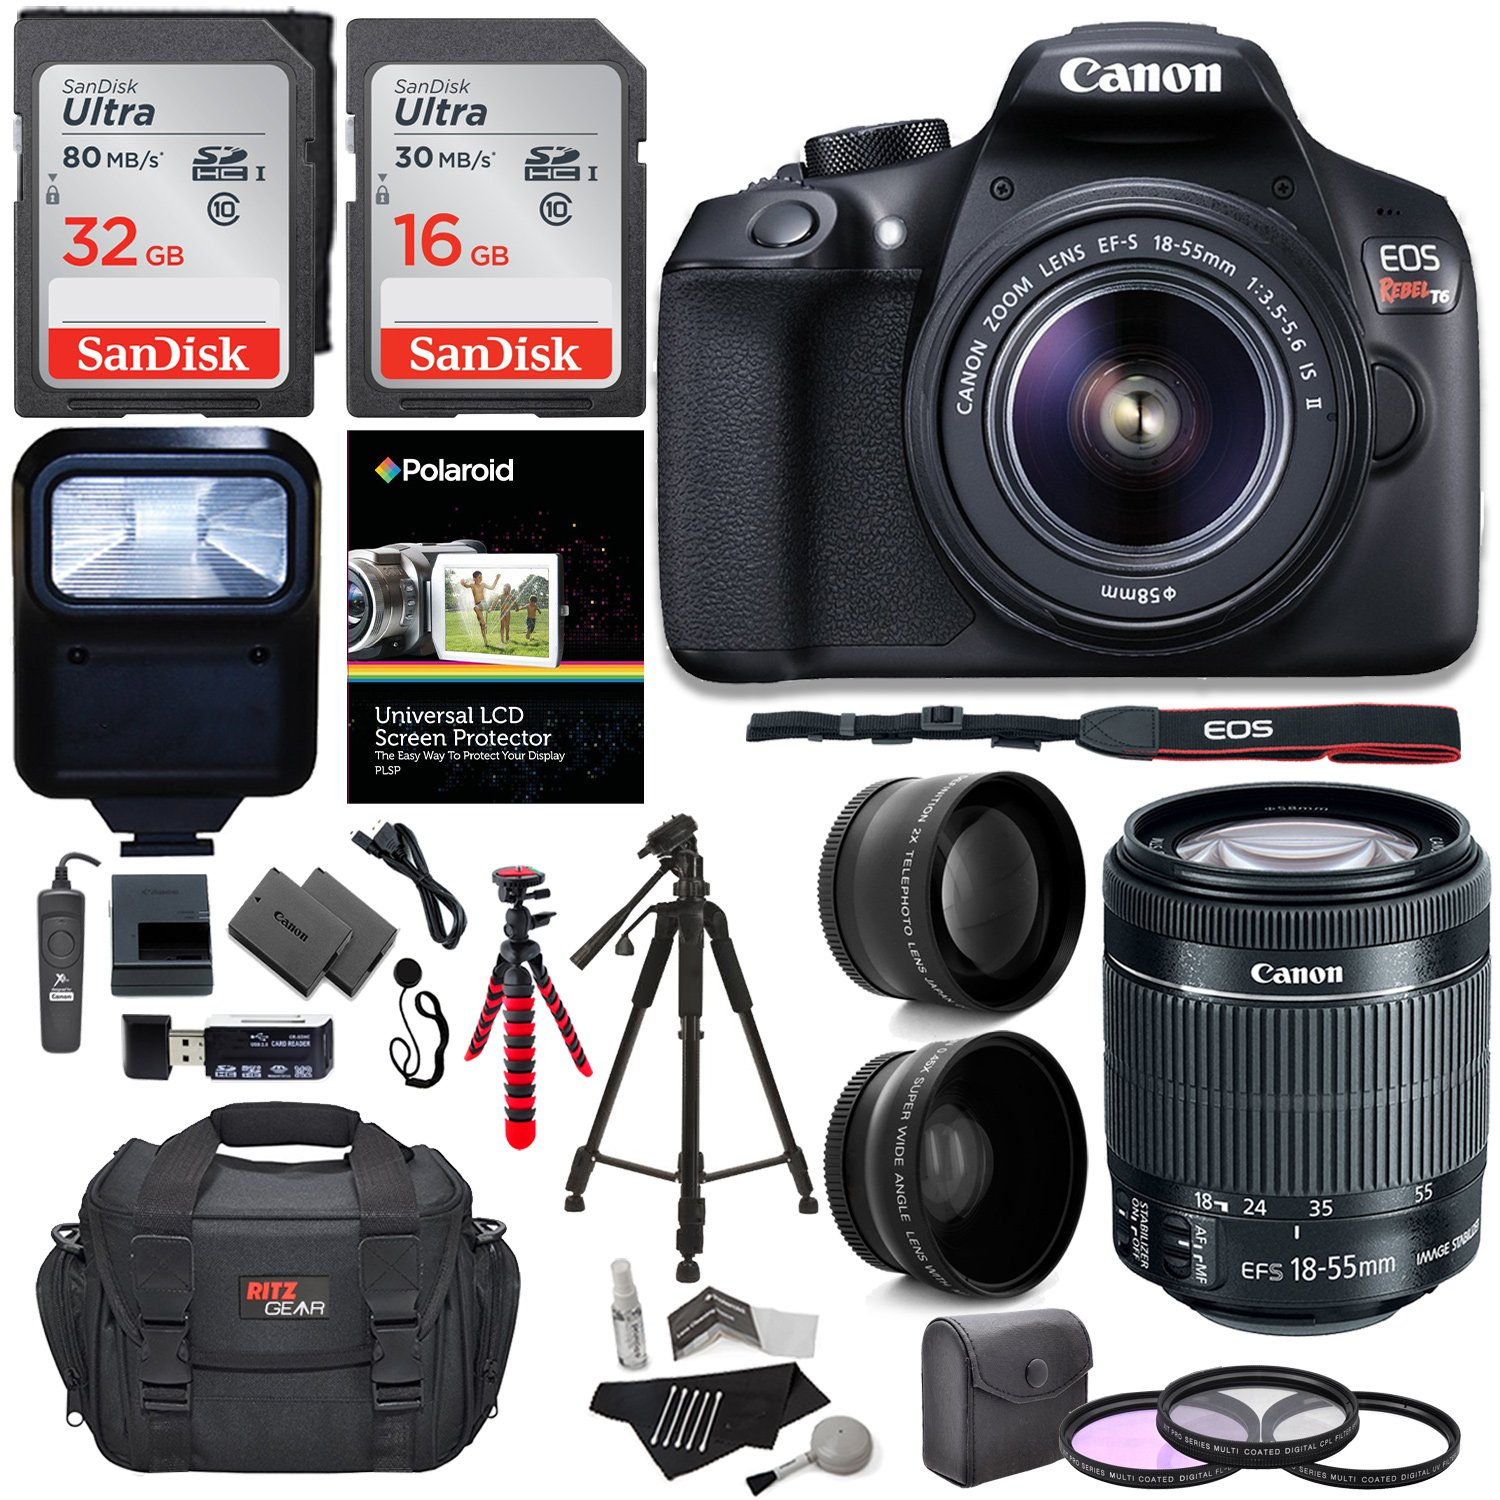 Ritz Camera Canon T6 Digital Rebel SLR Camera Kit with EF-S 18-55mm f/3.5-5.6 IS II Lens, 64GB Memory Card, Camera Bag and Premium Accessory Bundle